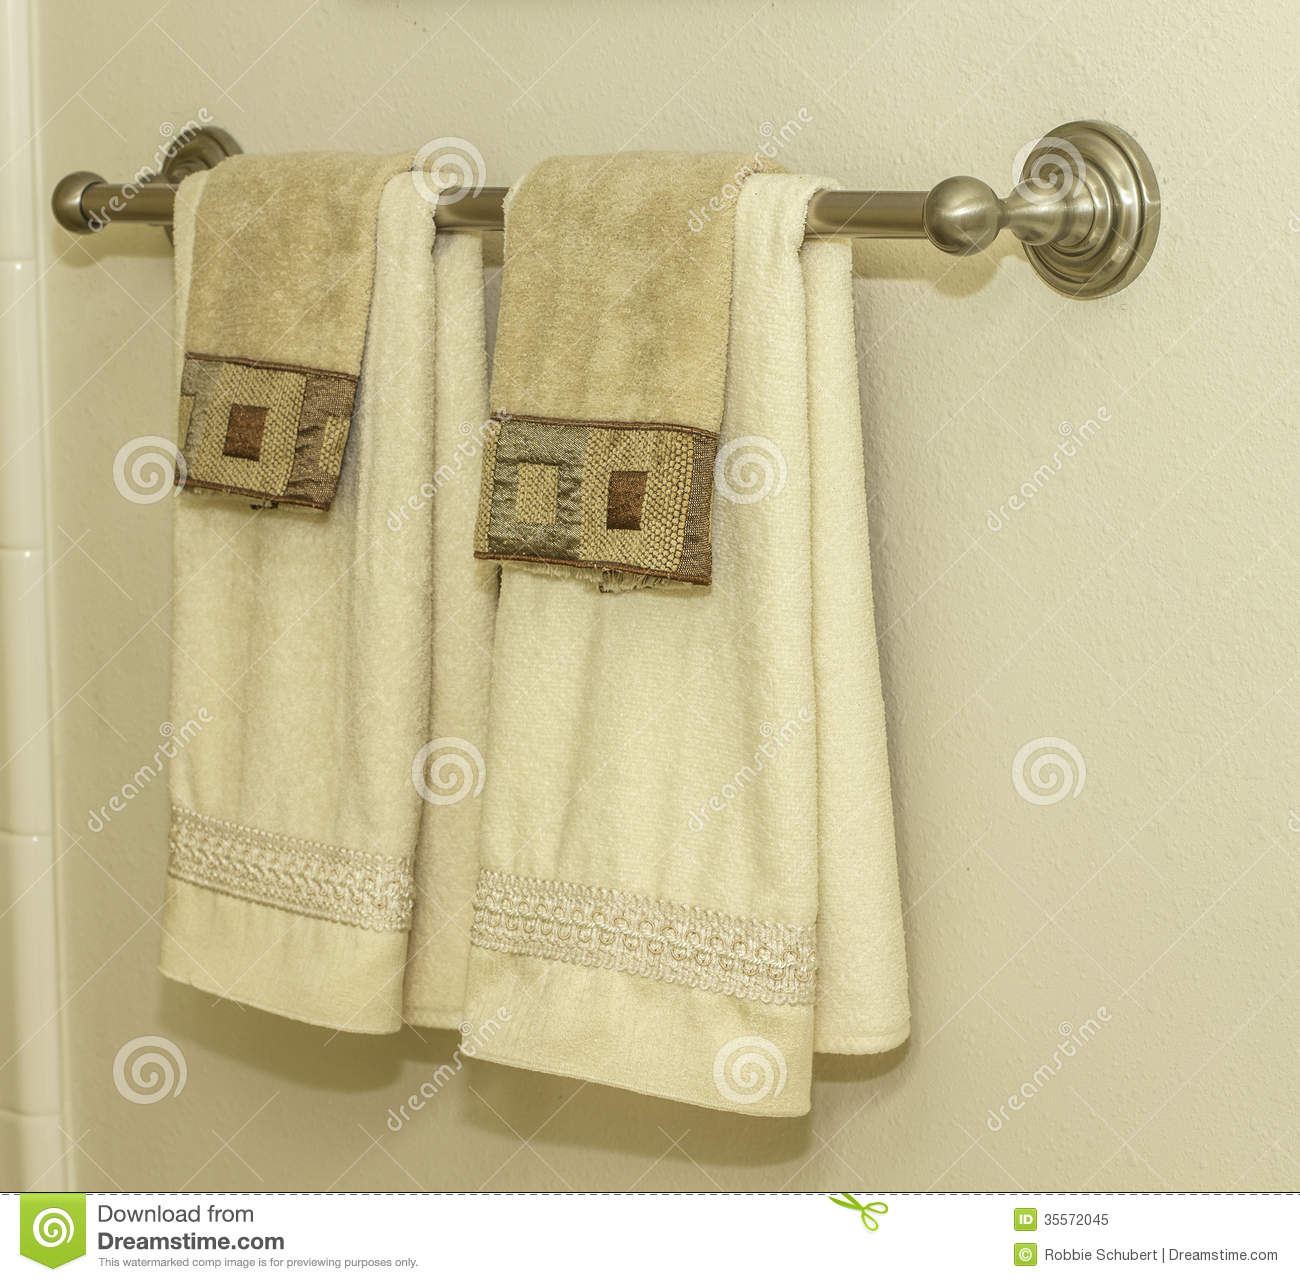 Bathroom towel rack stock image image of fixture for What to hang on bathroom walls